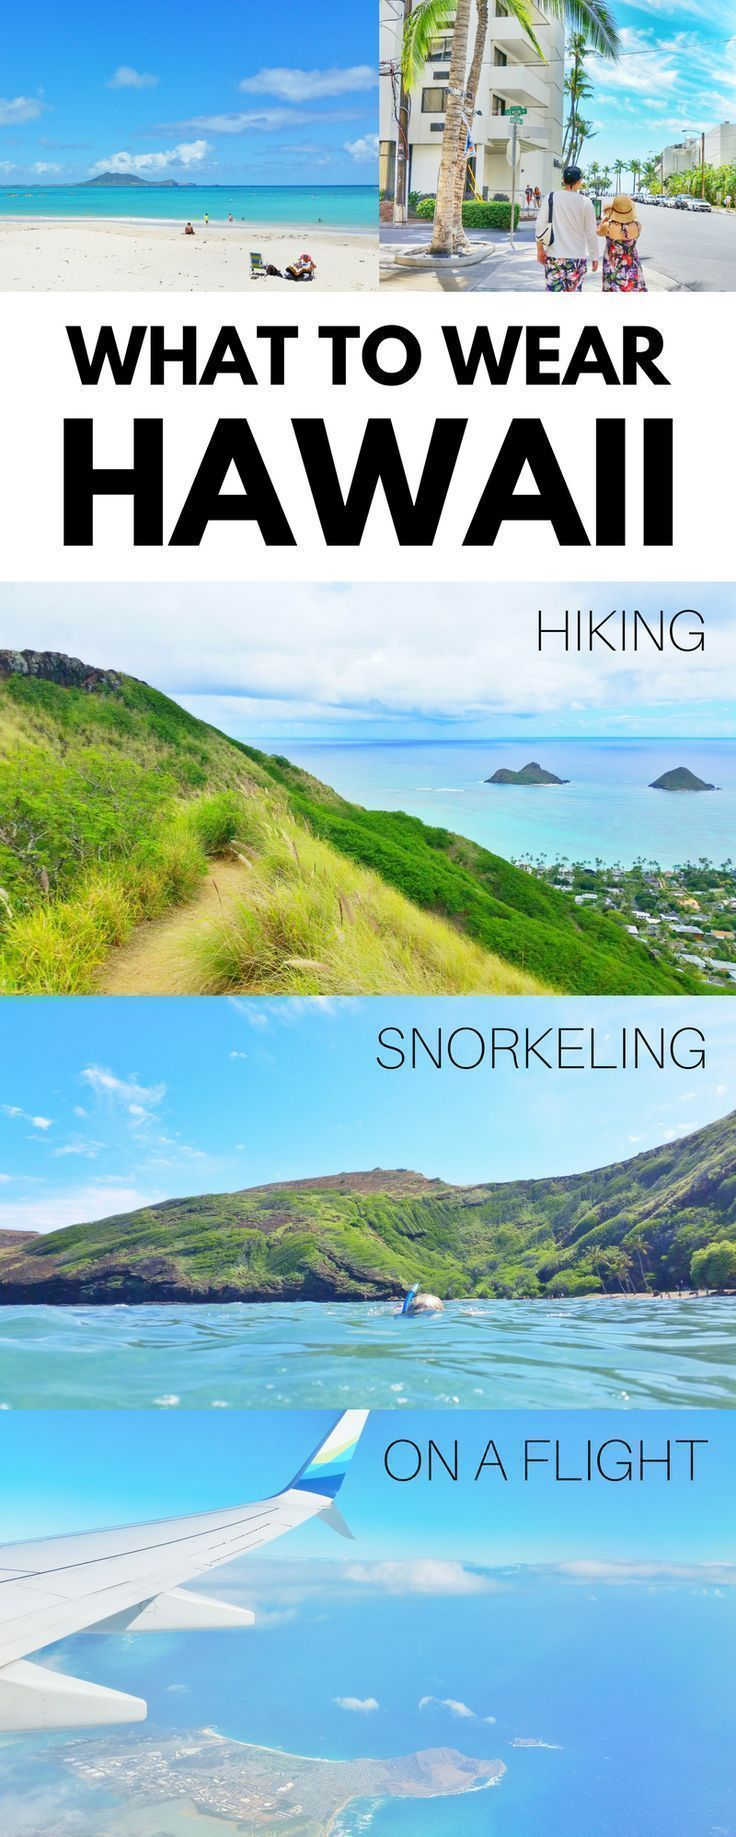 Hawaii packing tips with what to wear in Hawaii, what to pack for travel packing list, whether vacation is Oahu, Maui, Kauai, or Big Island! List of ideas, when planning on some things to do for outdoor travel destination in the USA as part of your world bucket list! Hiking, beach, snorkeling are budget activities free or cheap compared to some tours! What to wear to luau, on a flight to Hawaii, outfits, fitness active vacation.. #hawaii #oahu #maui #kauai #bigisland #beachtravel #hikeideas